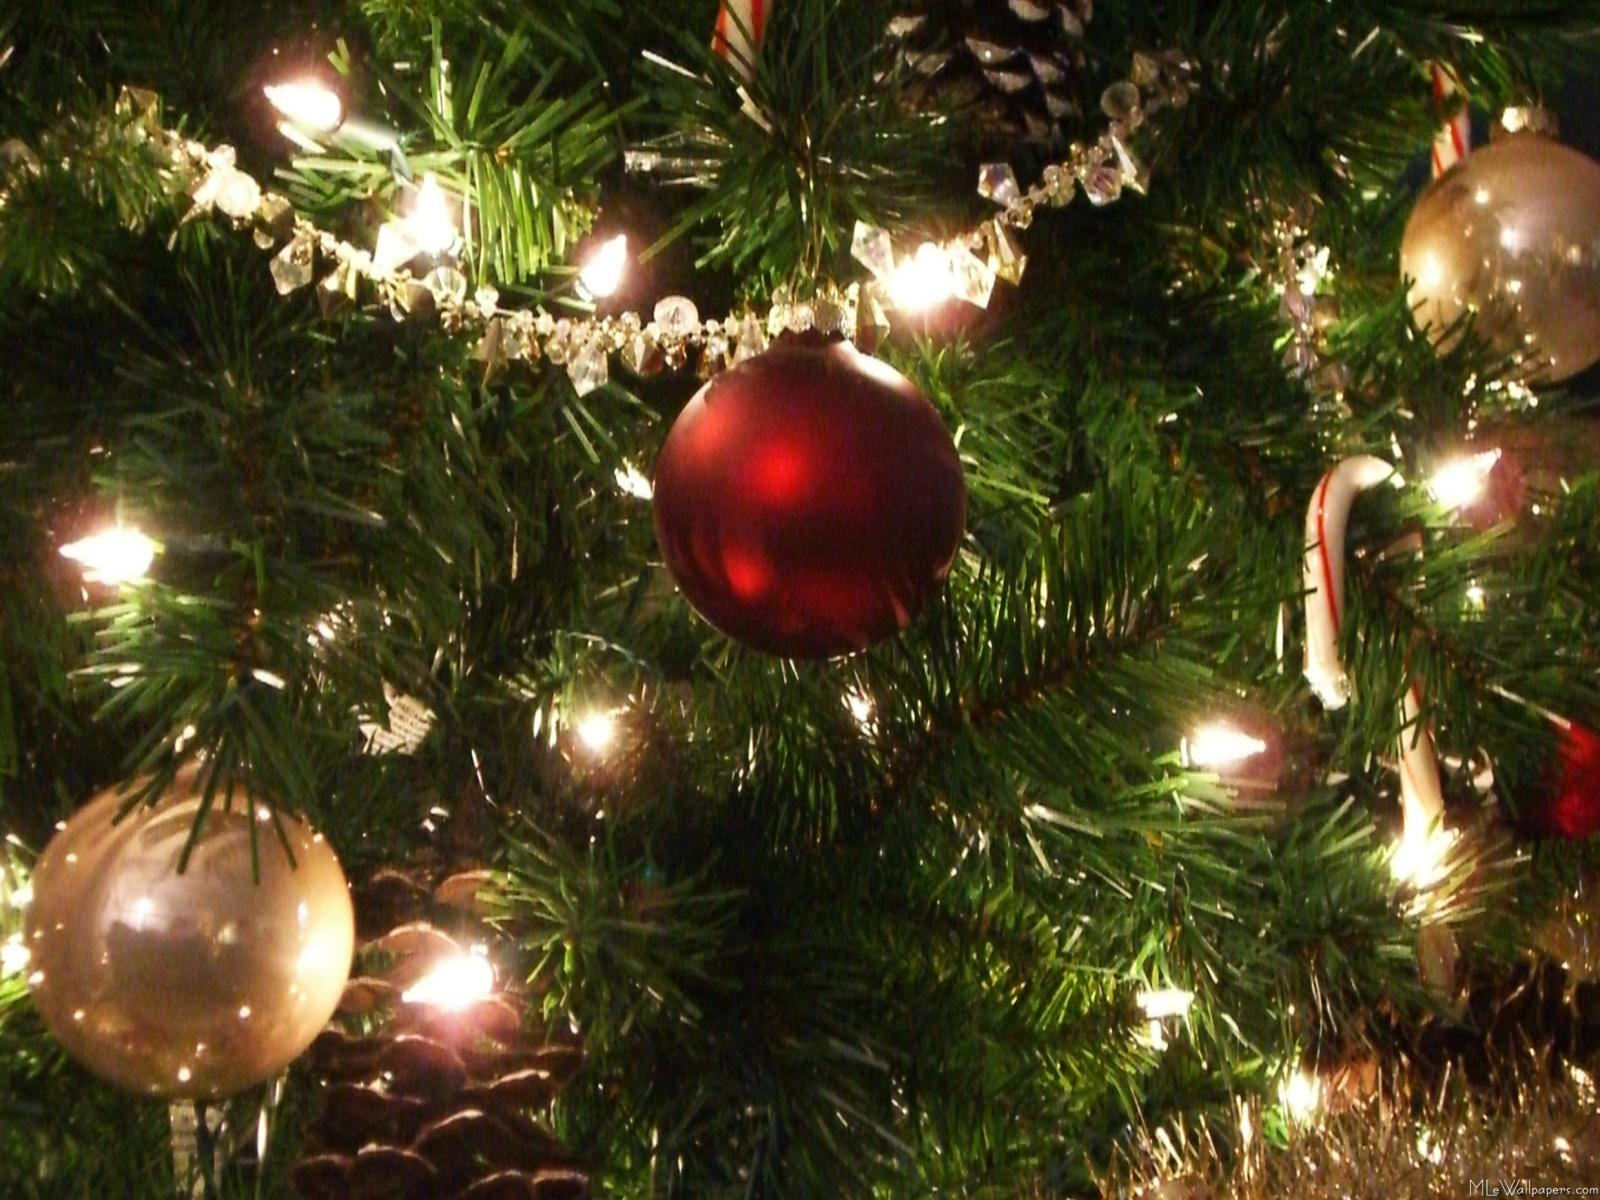 16-Christmas-wallpapers-free-christmas-balls-in-tree-wallpaper.jpg